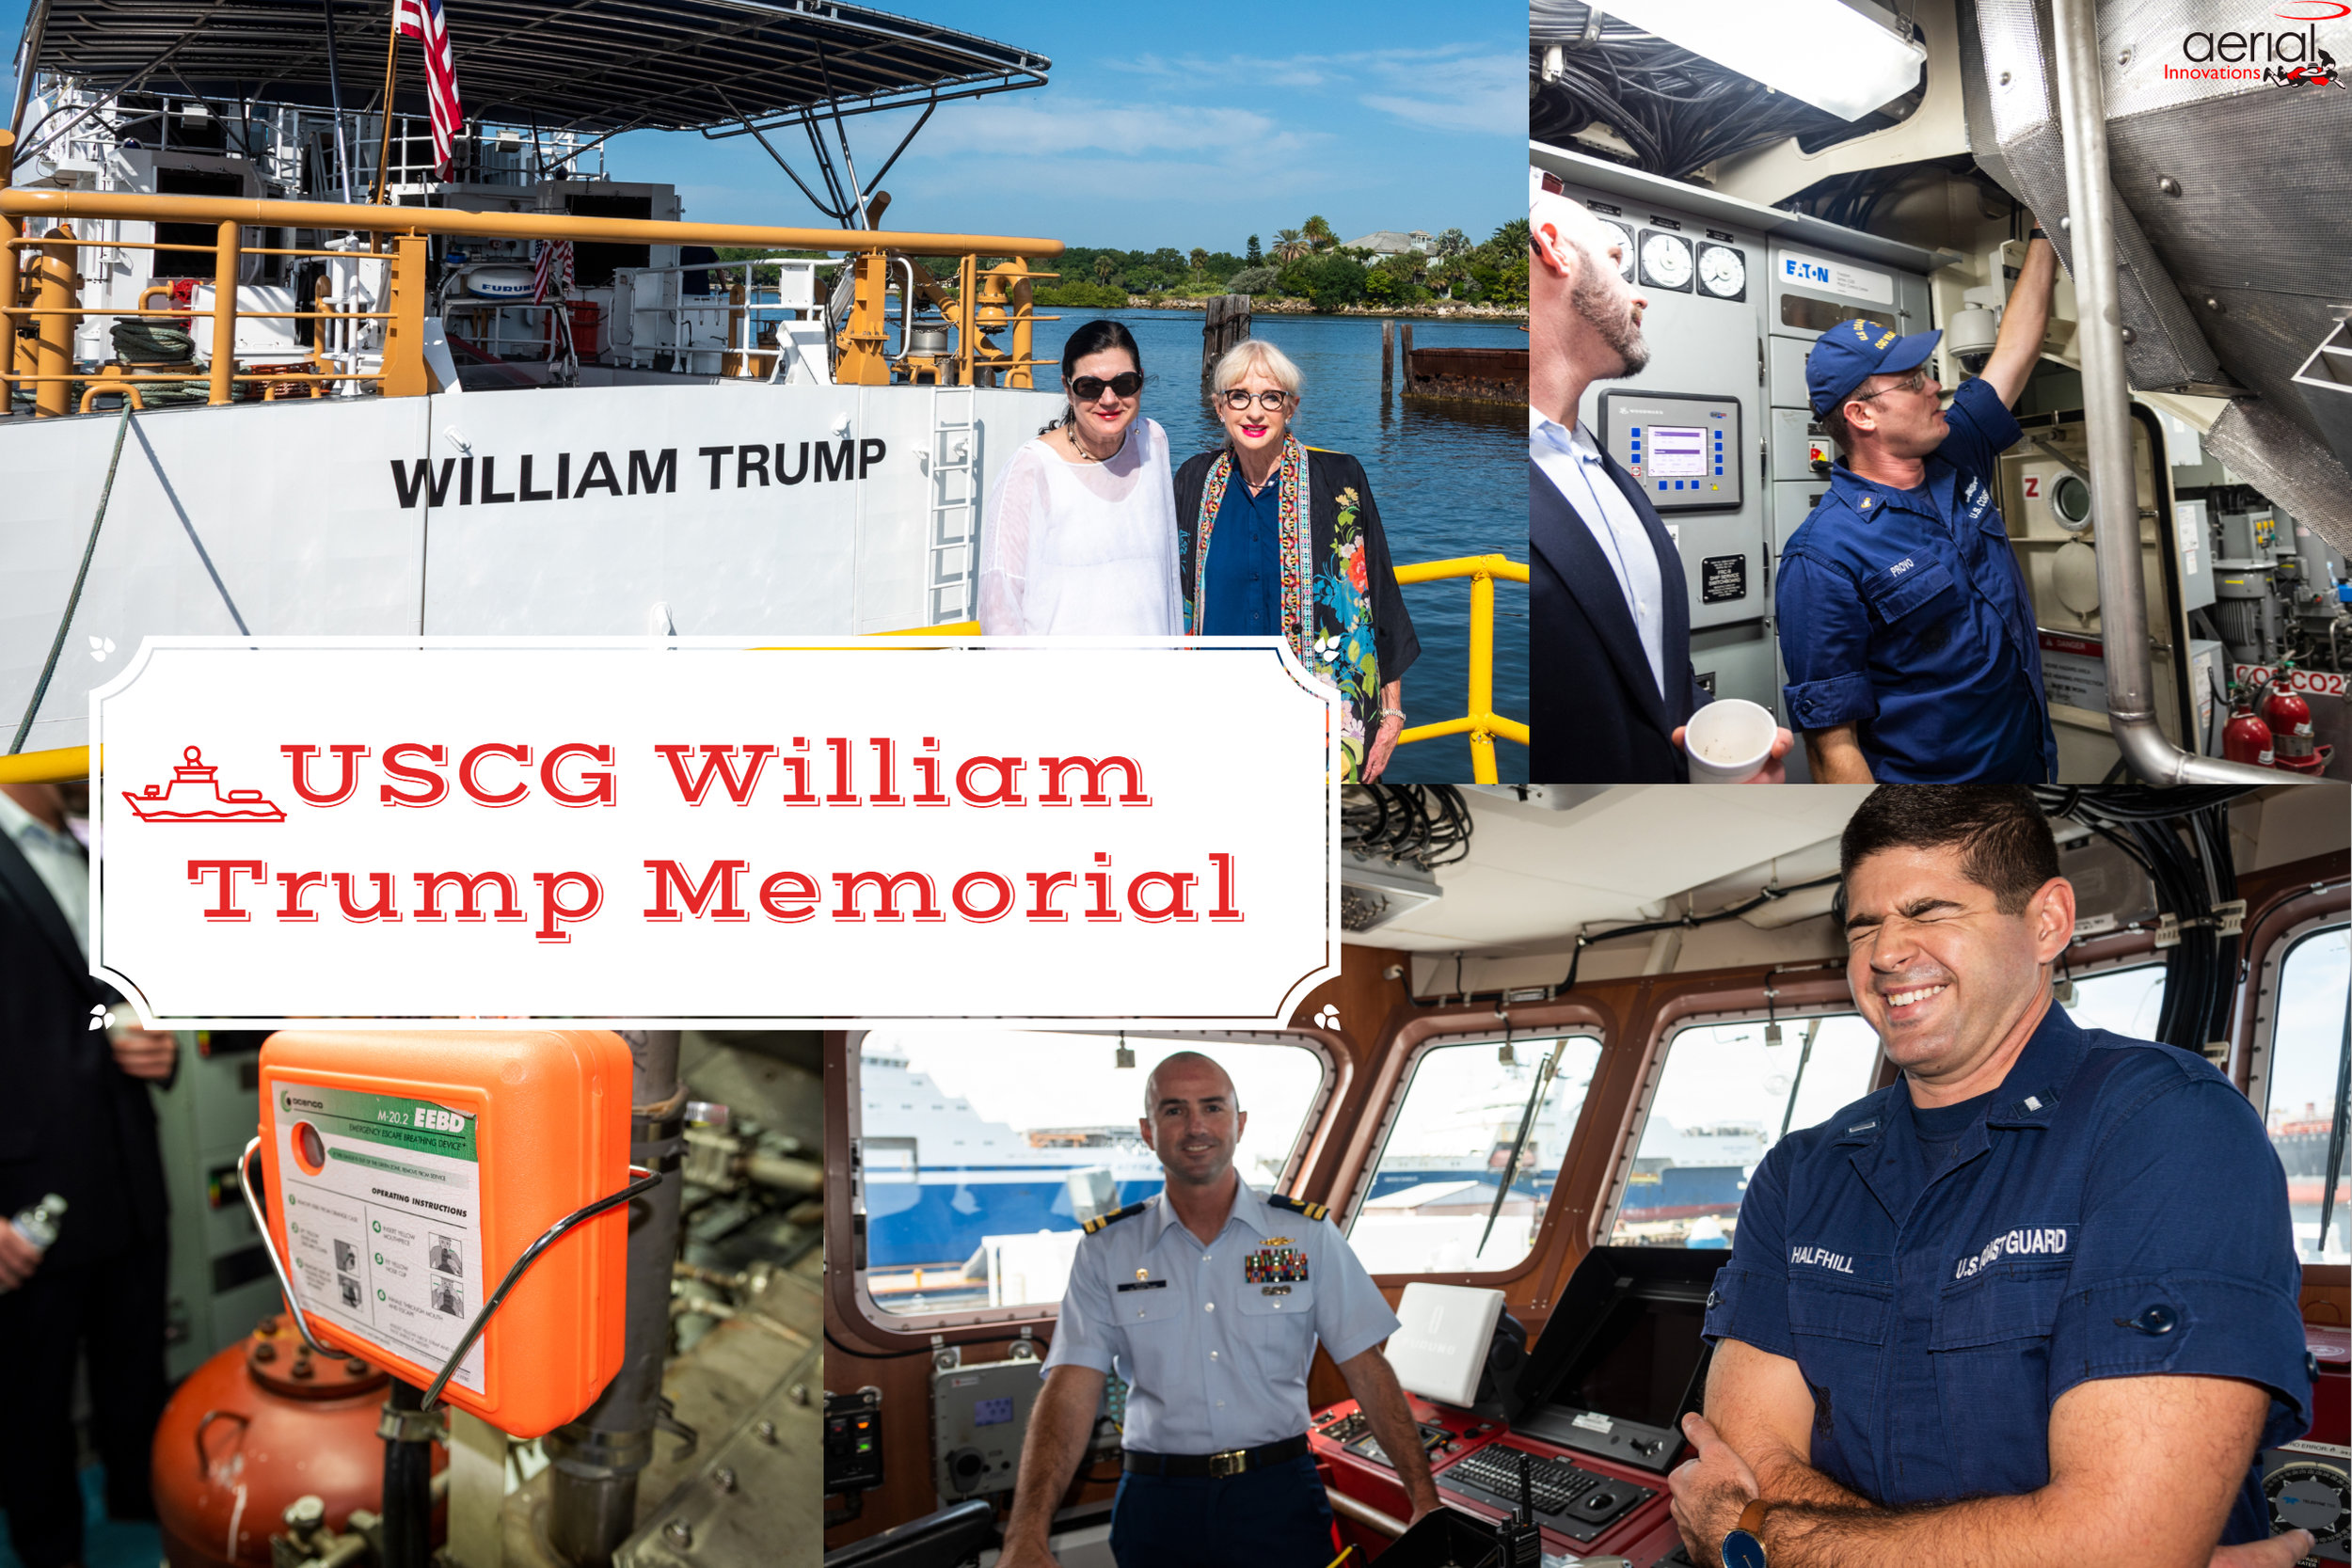 USCG William Trump Memorial